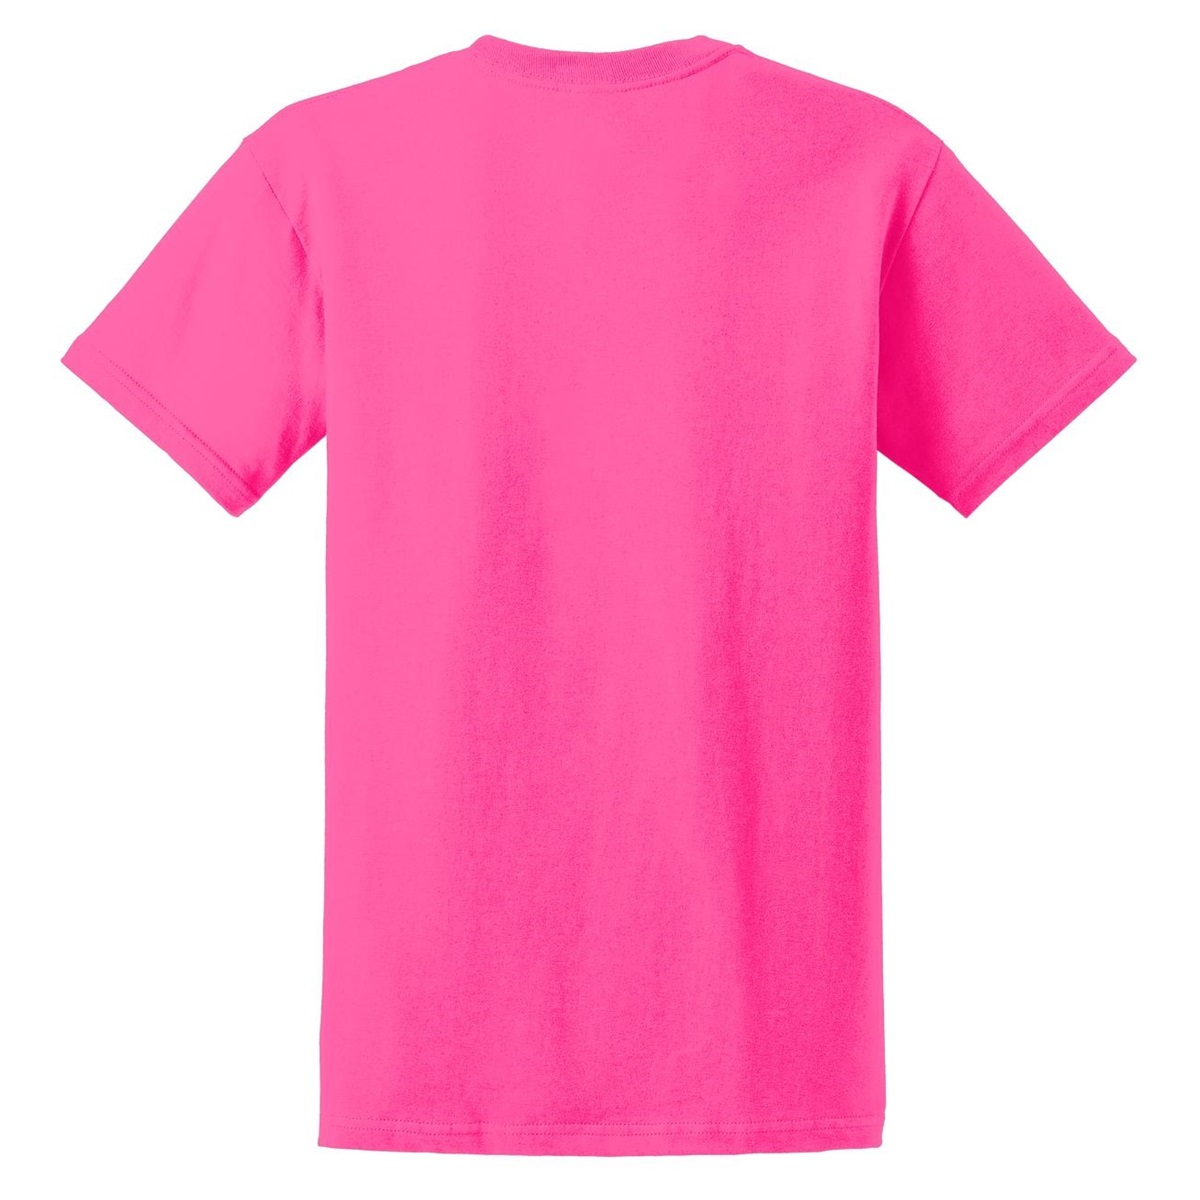 Gildan 2000 ultra cotton t shirt safety pink for Gildan camouflage t shirts